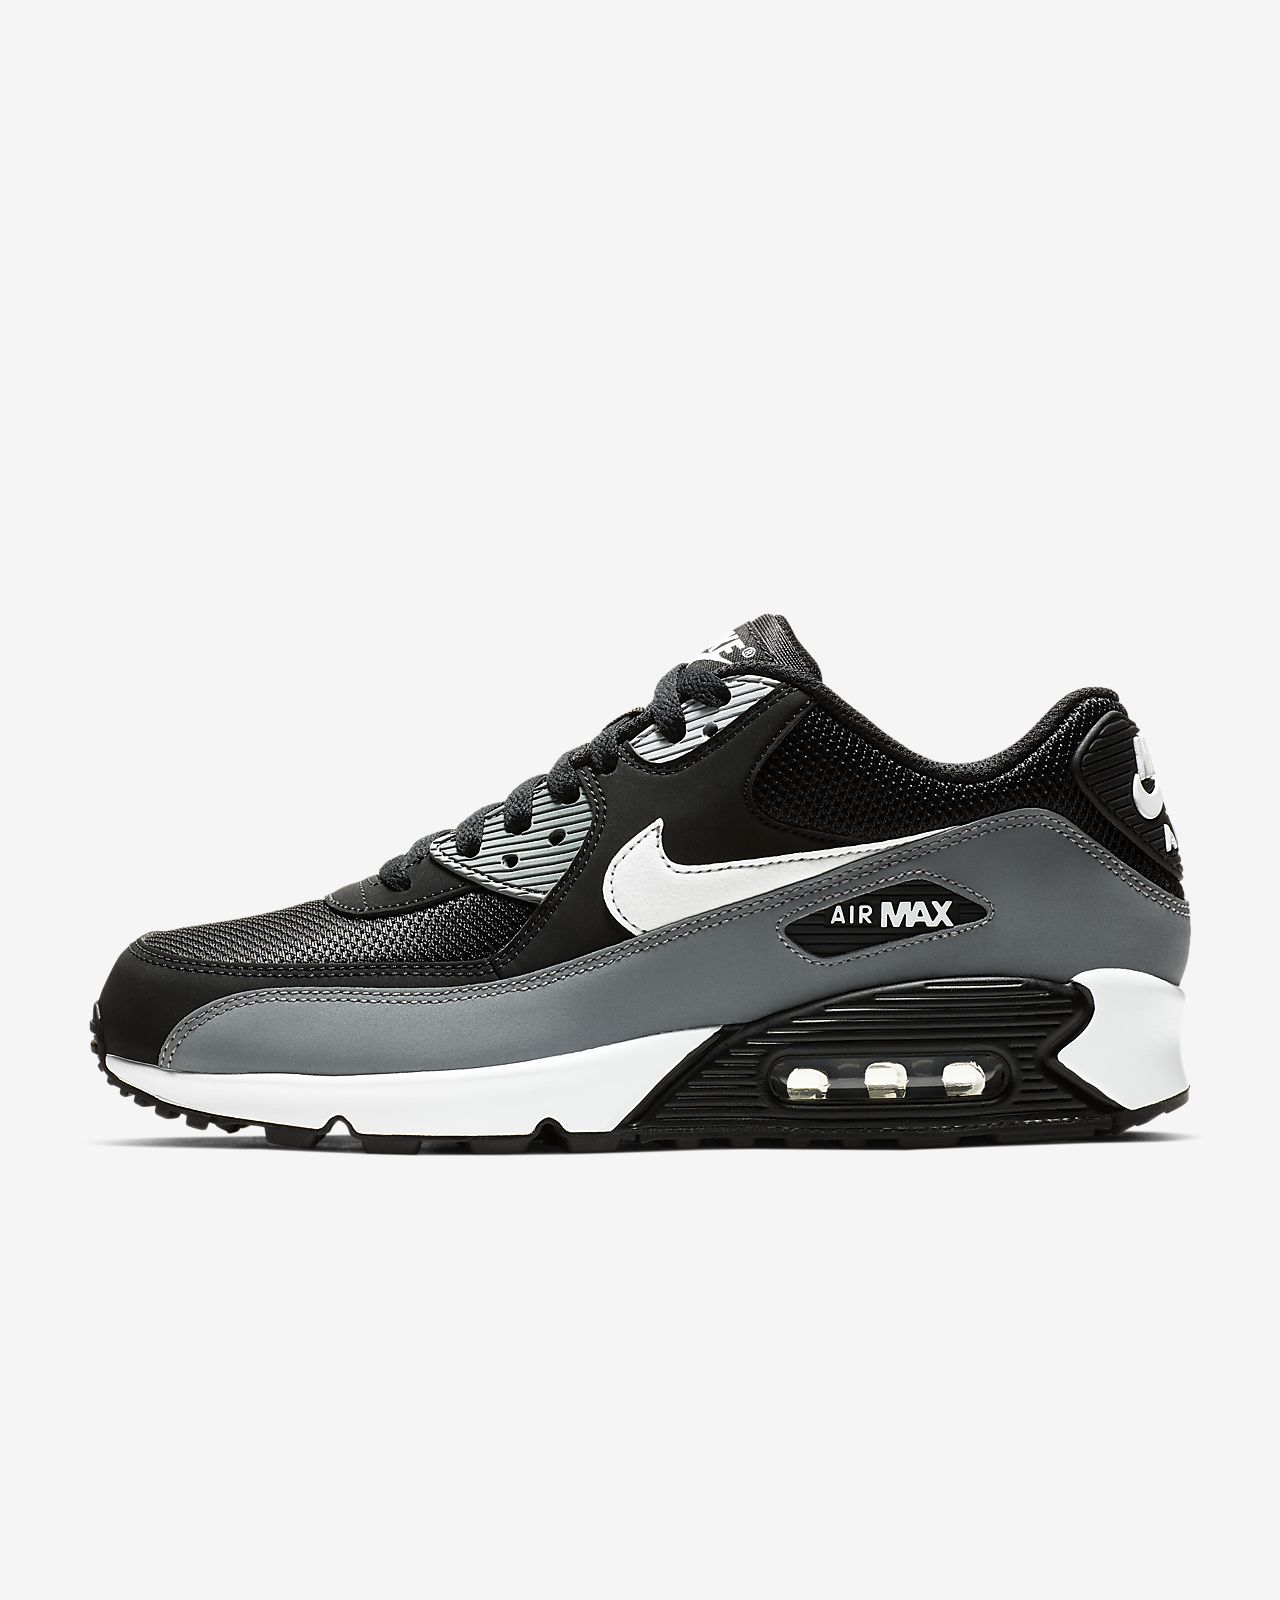 separation shoes 8e55c 36d45 ... Nike Air Max 90 Essential Men s Shoe